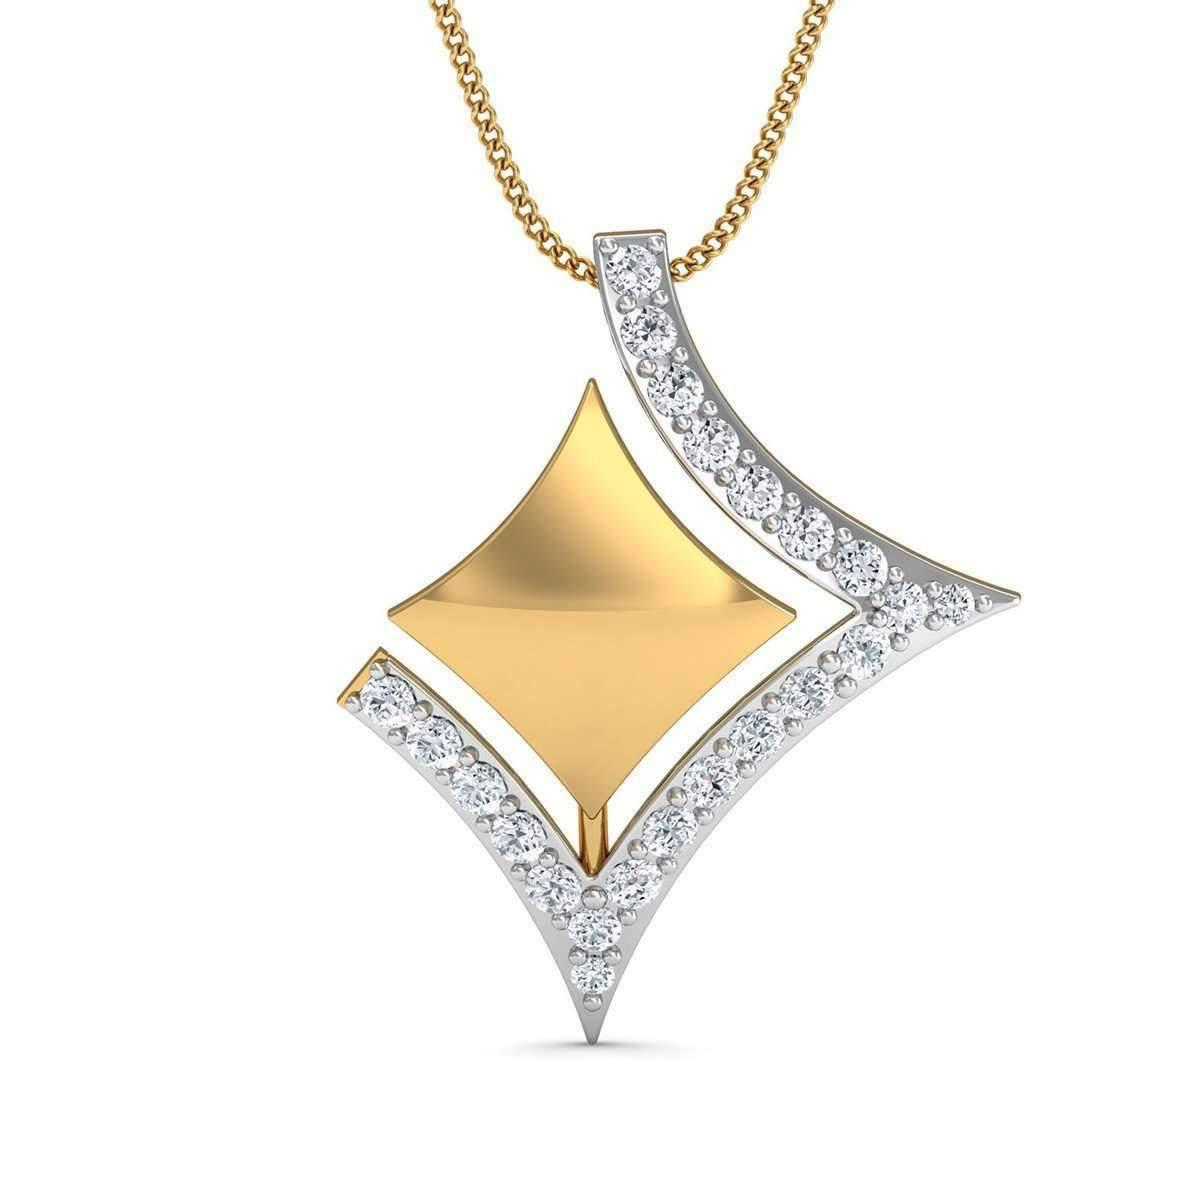 Diamoire Jewels Diamond and 14kt Yellow Gold Pave Pendant ddkHMbb